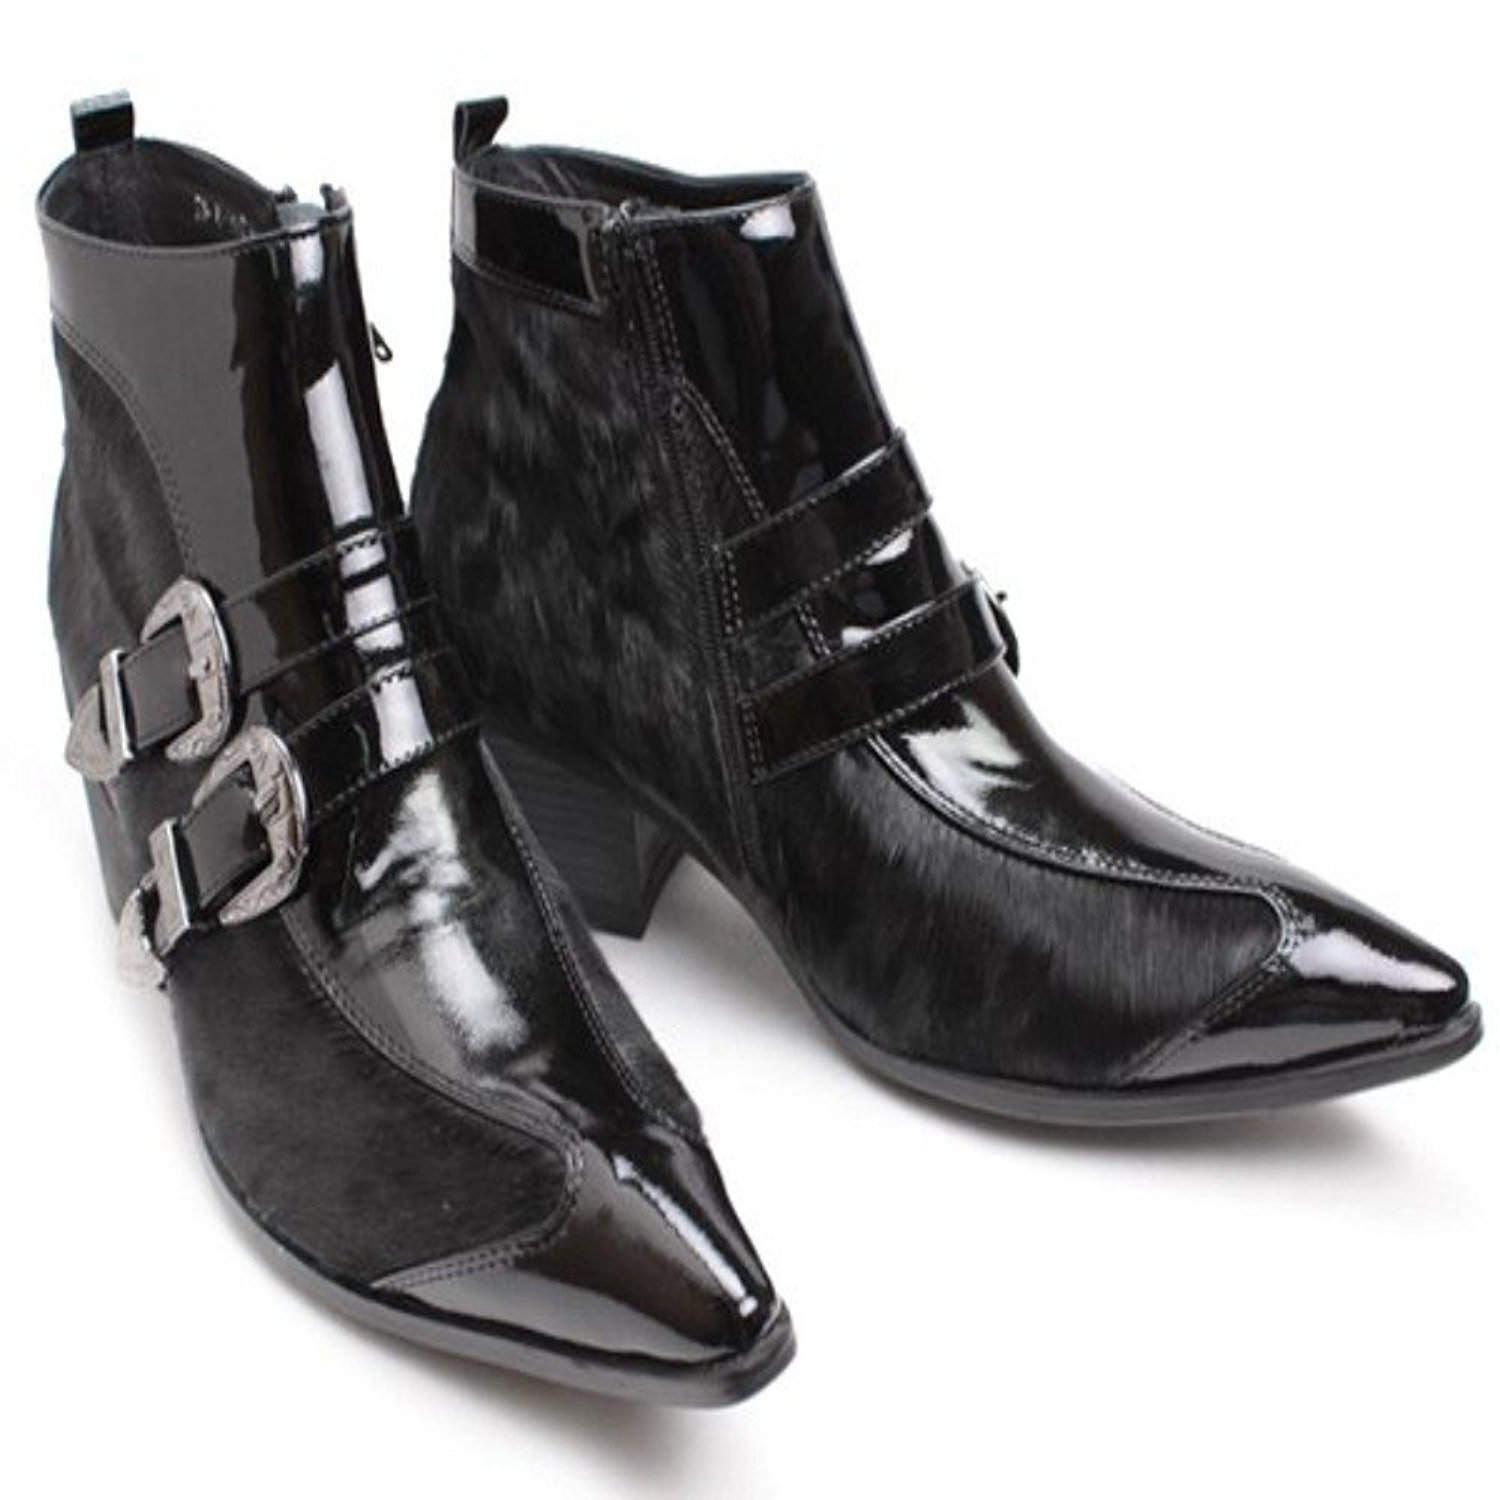 2c2b692f73b Cheap Mens Boots With Buckles, find Mens Boots With Buckles deals on ...